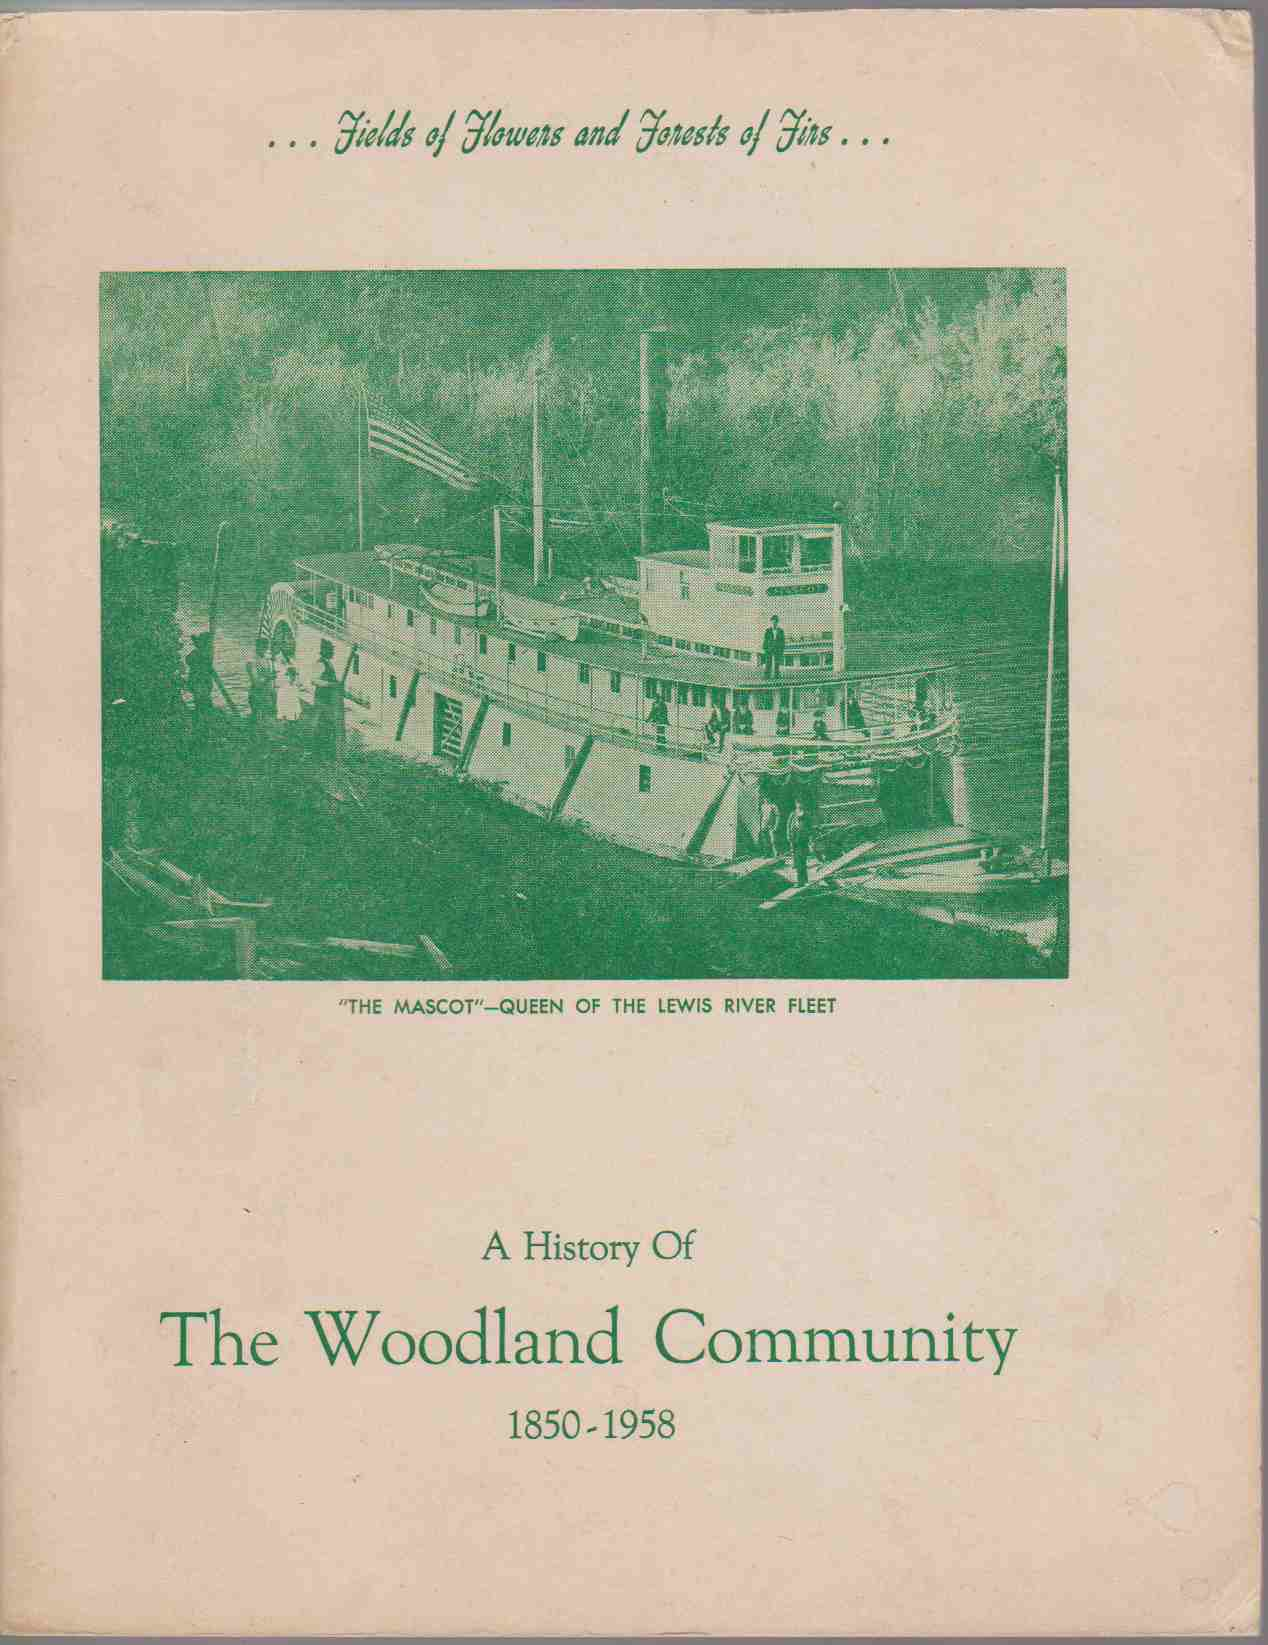 Image for FIELDS OF FLOWERS AND FORESTS OF FIRS... A HISTORY OF THE WOODLAND COMMUNITY 1850-1958